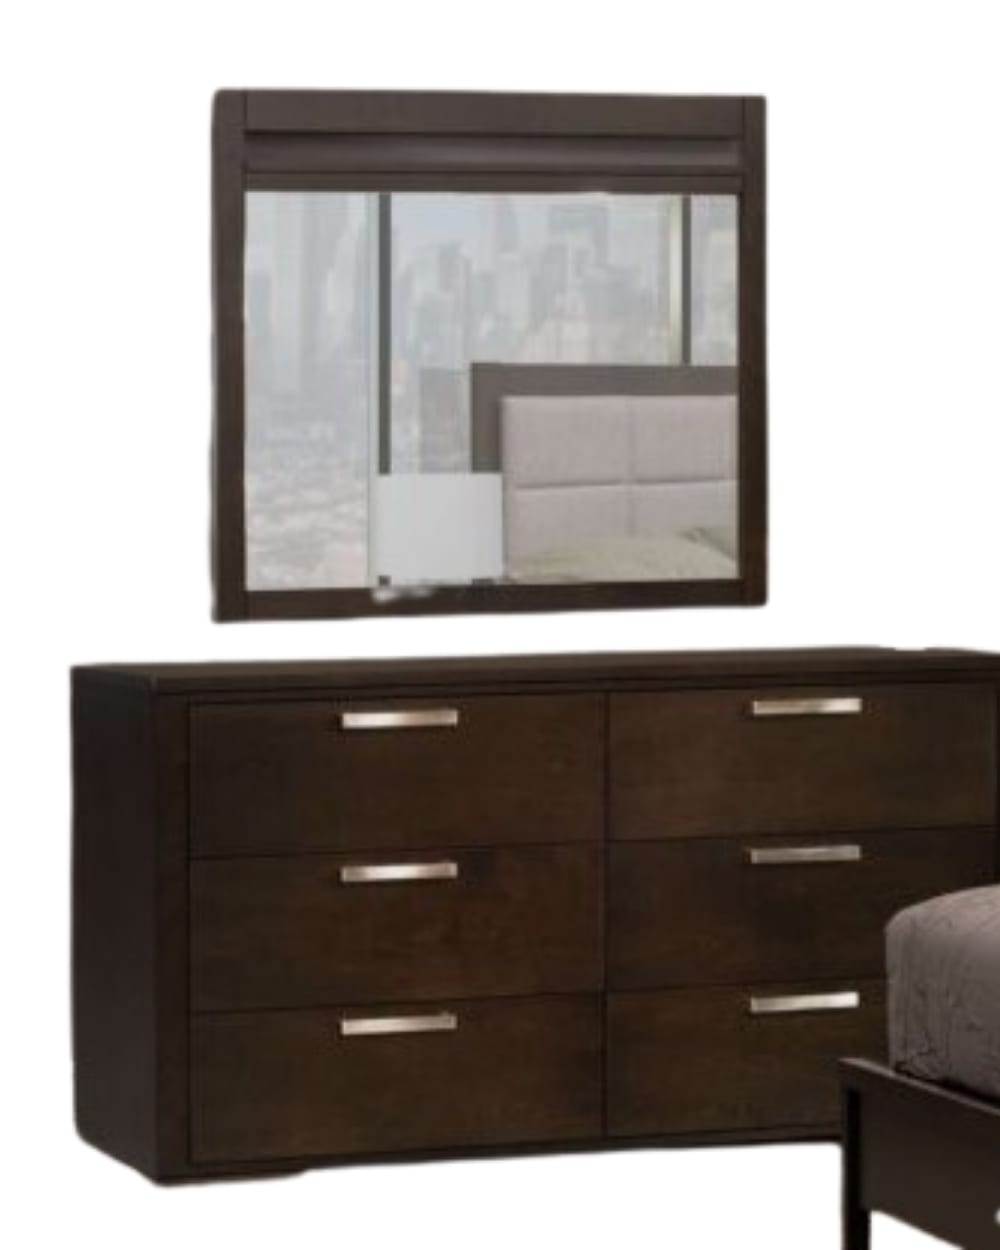 Kingston Six Drawers Small Double Dresser With Mirror